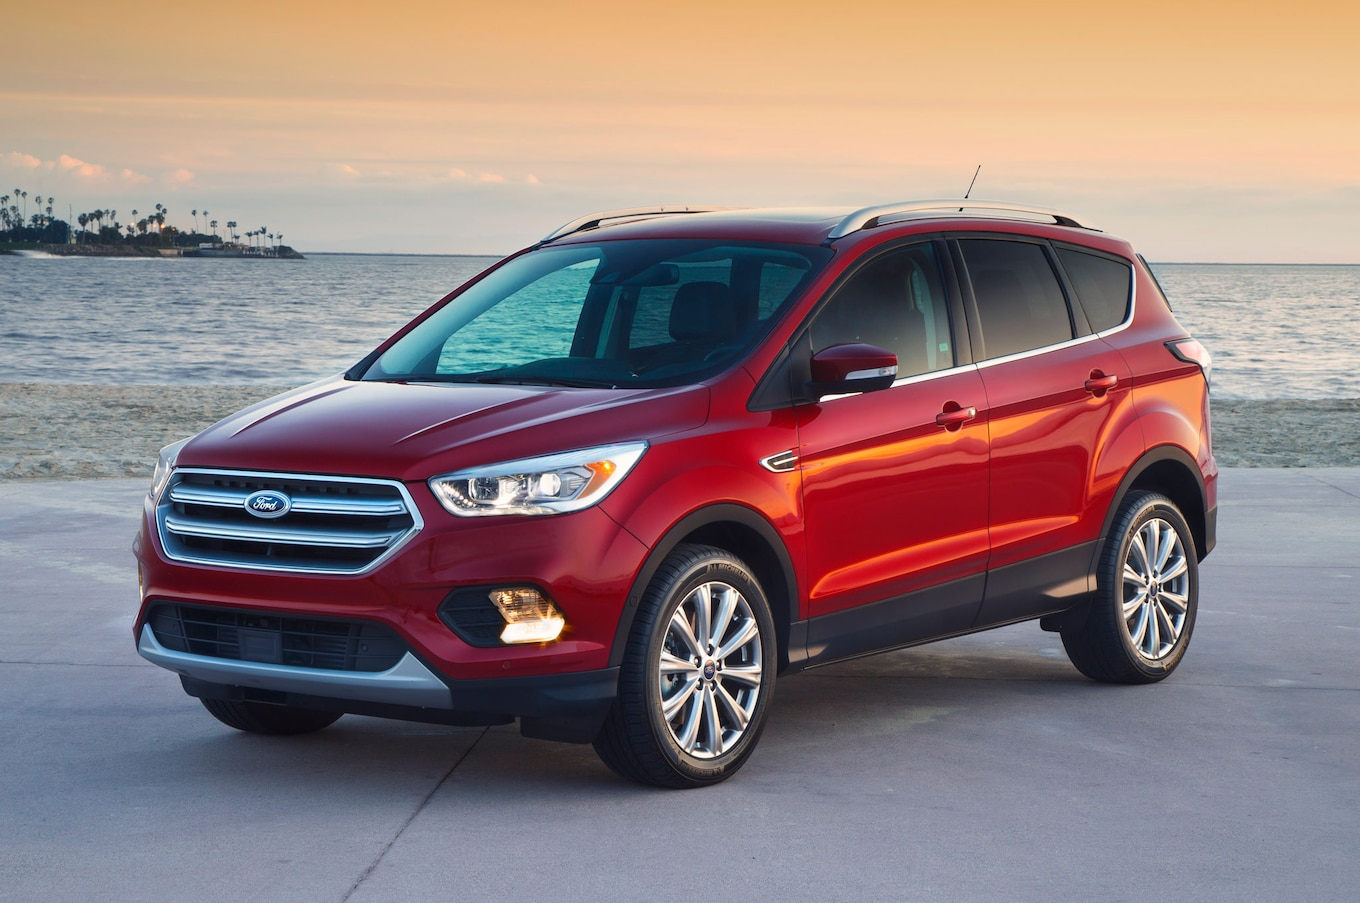 2017 Ford Escape Review and Rating  Motor Trend